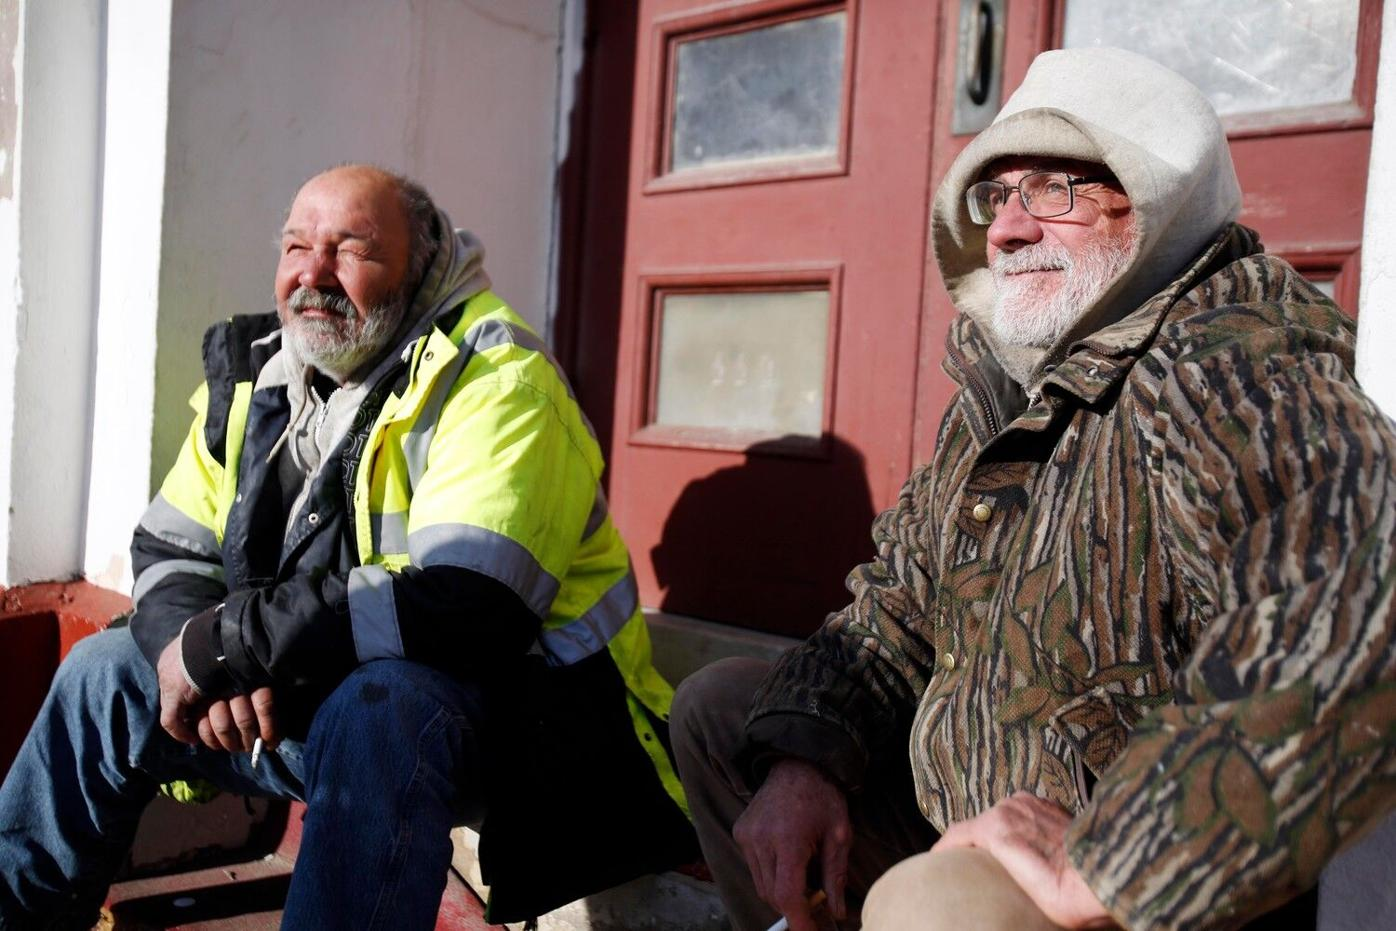 With state funds frozen, local shelters have fewer beds to offer this winter